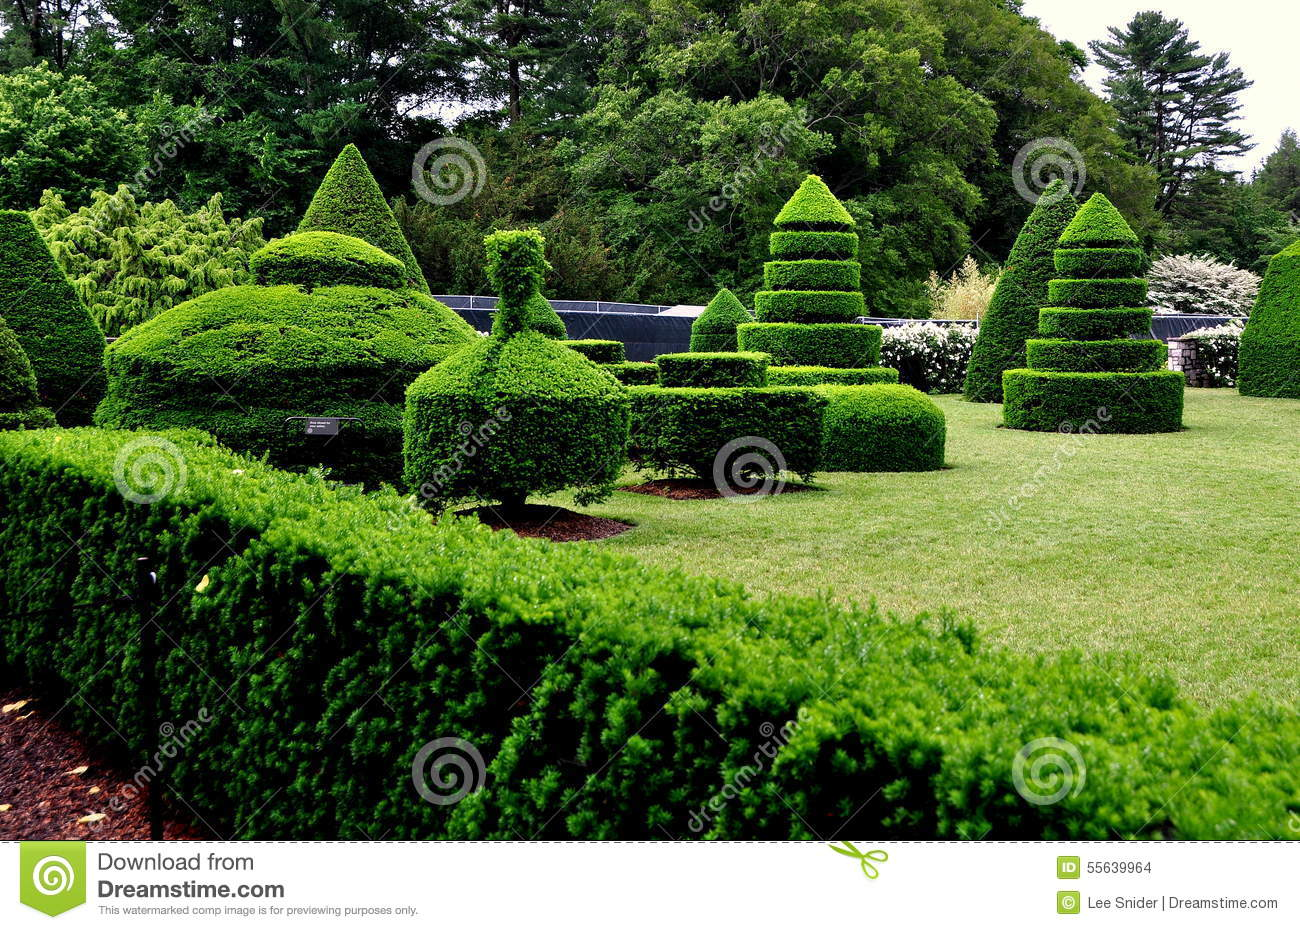 Kennett Square, PA: Longwood Gardens Topiary Trees